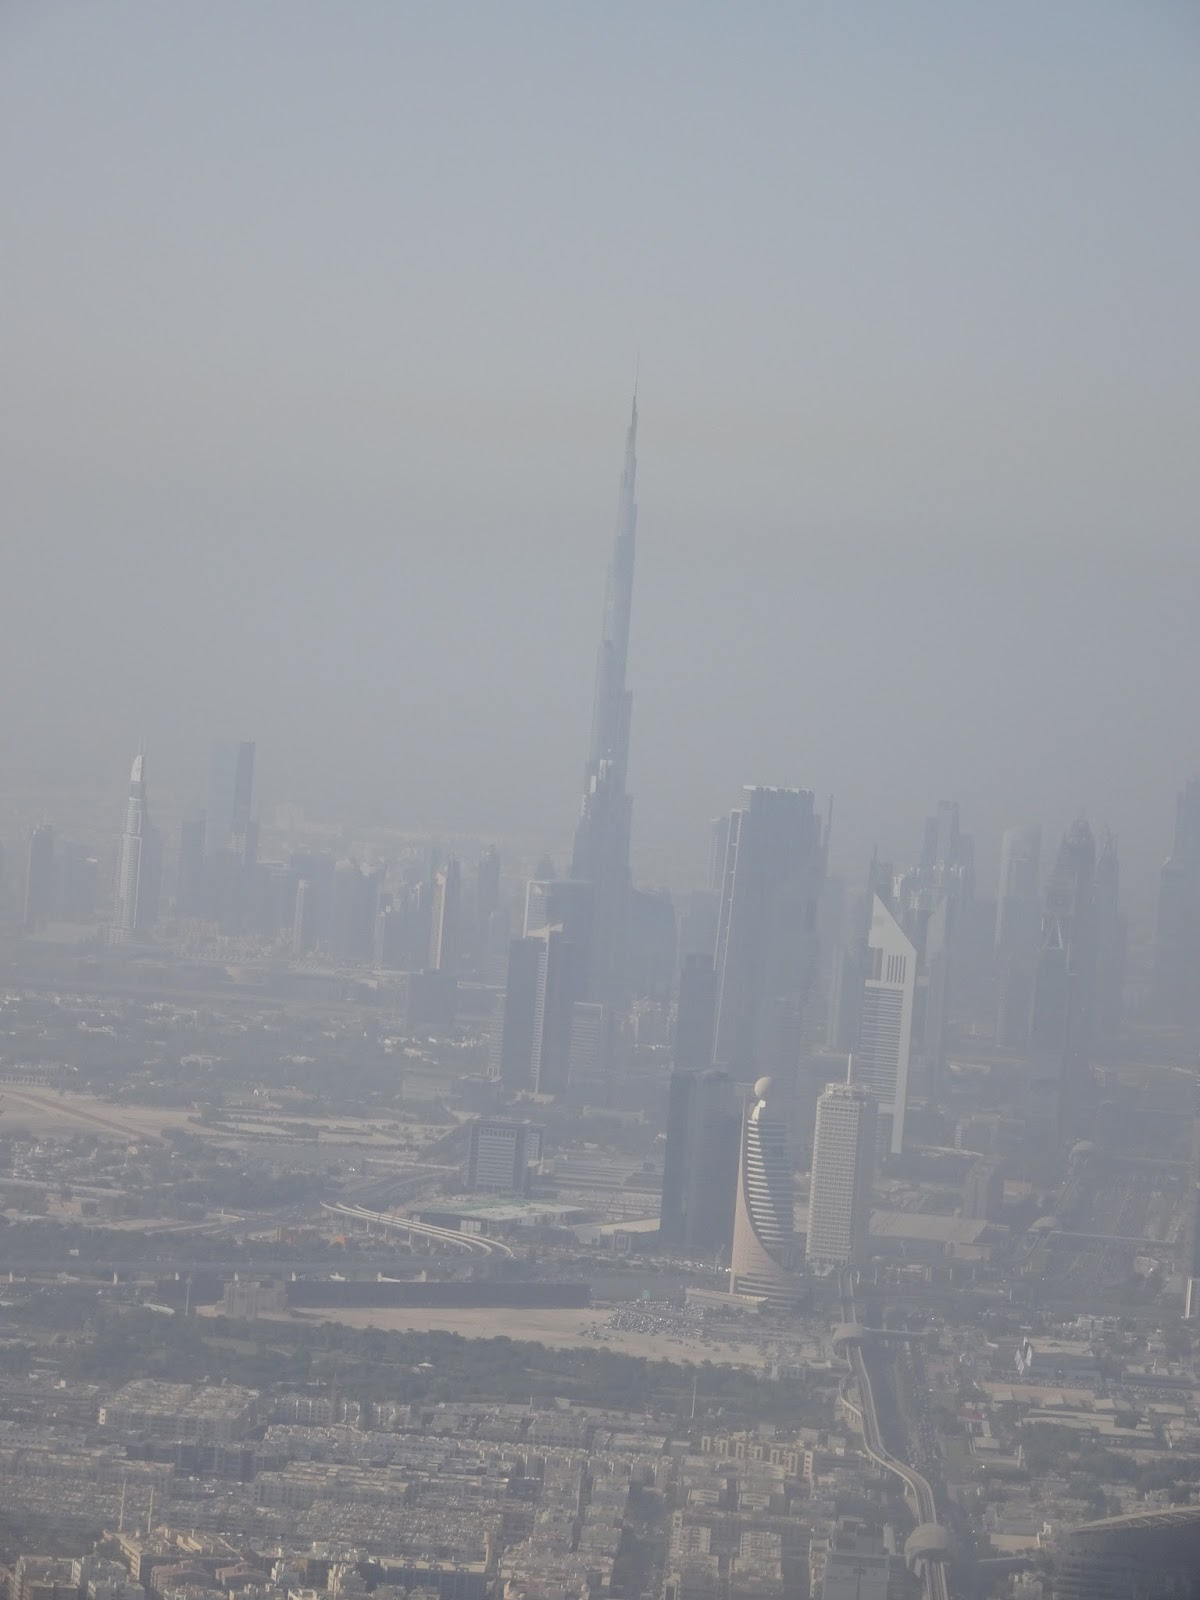 pollution in dubai The uae tops the world for exposure to tiny air pollutants, according to the latest report compiled by the world bank.